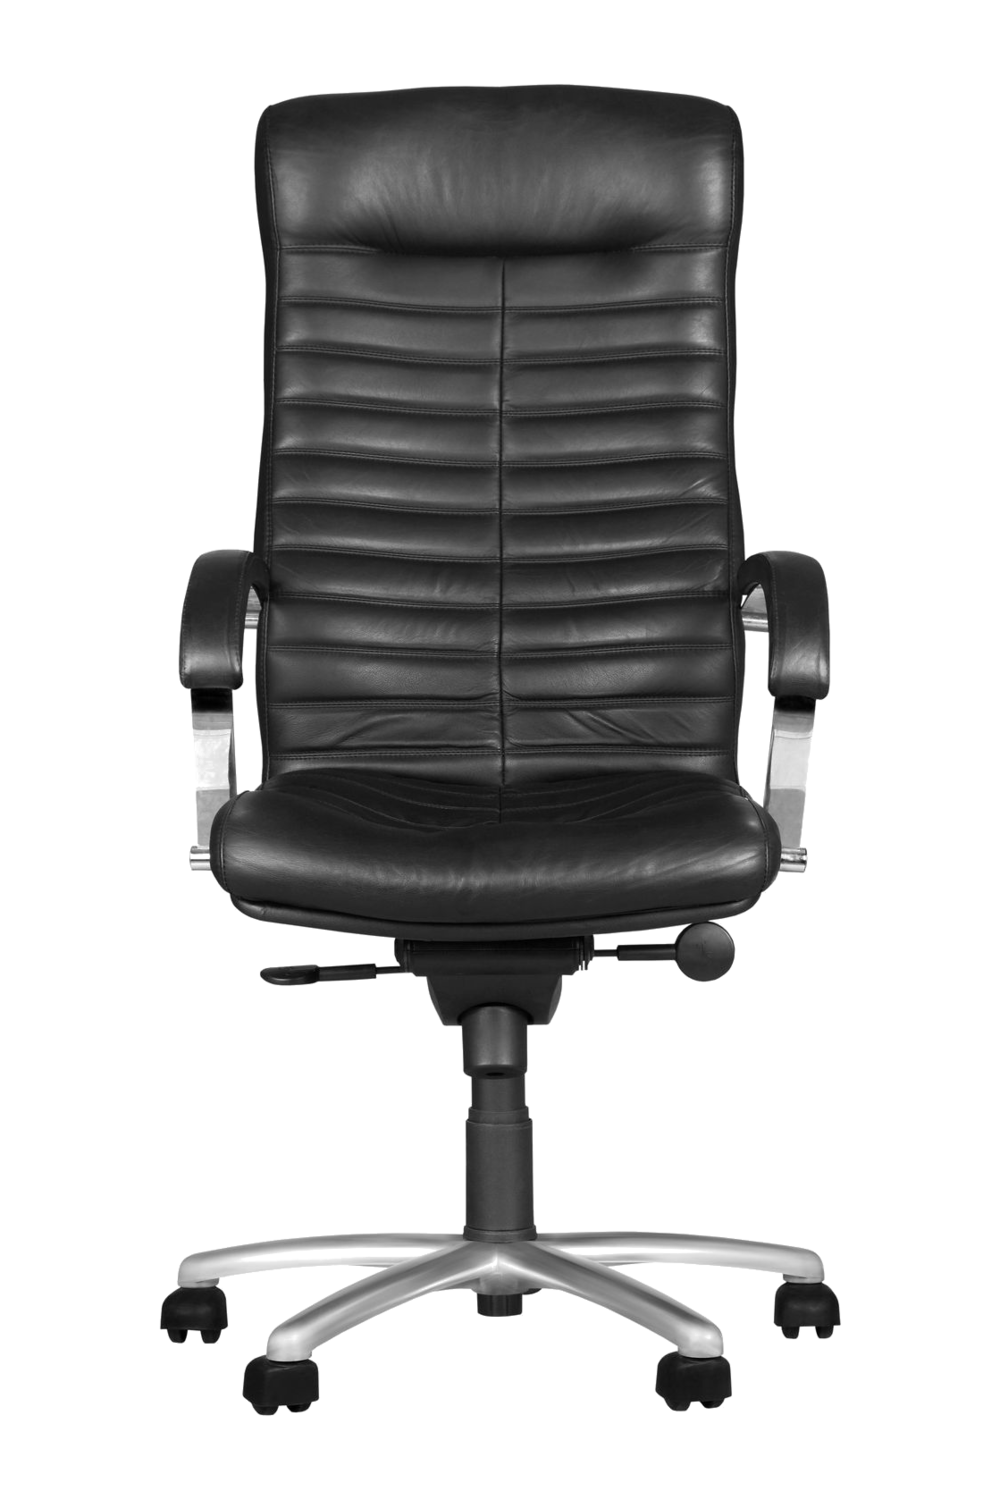 Chair Png Image Chair Home Decor Decor